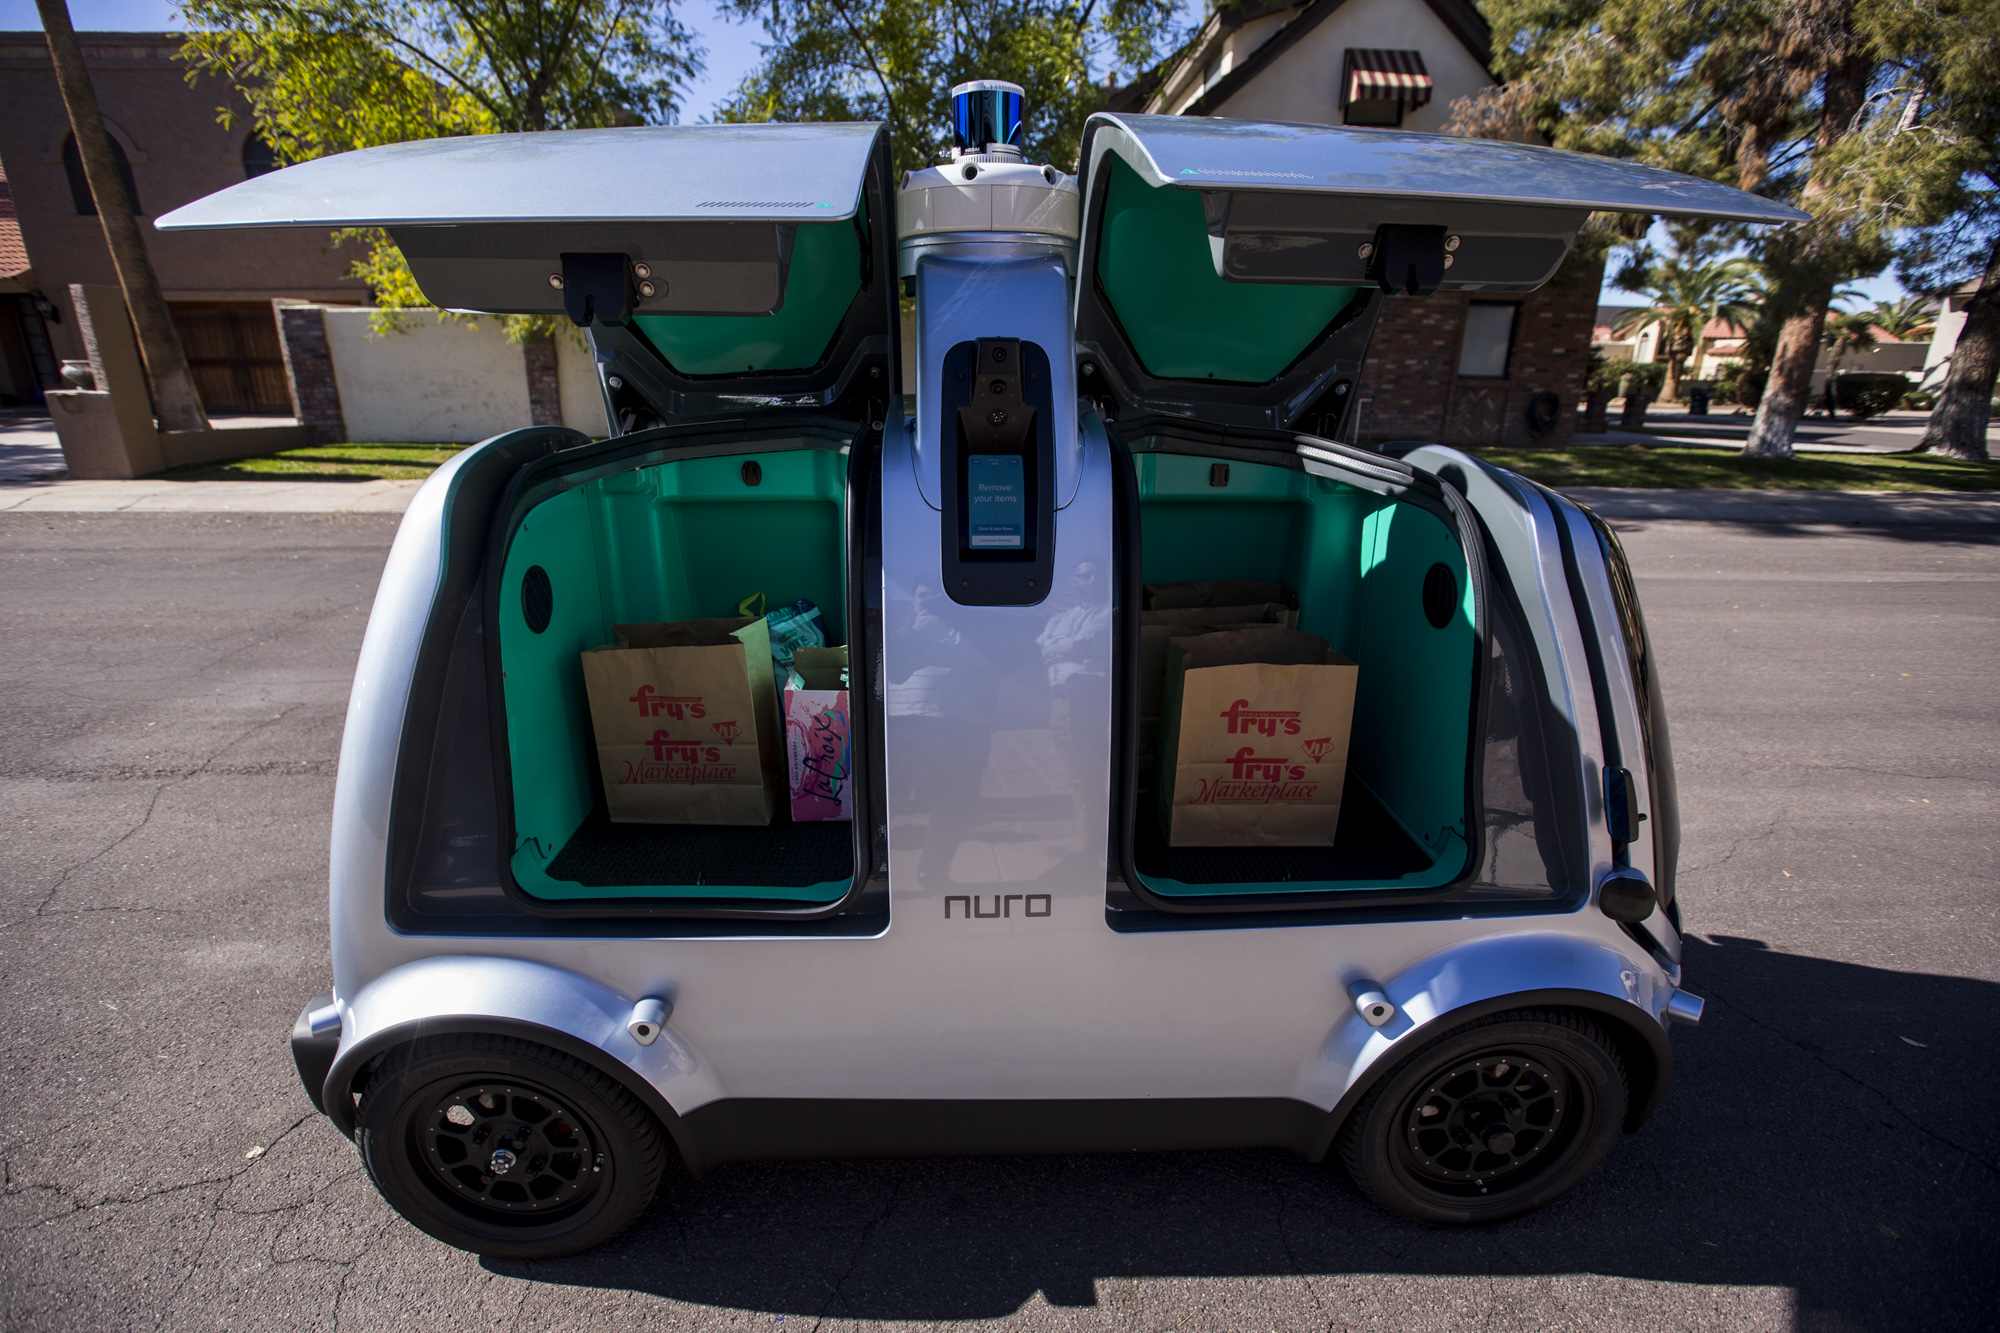 usatoday.com - Russ Wiles, Arizona Republic - Kroger ends its unmanned-vehicle grocery delivery pilot program in Arizona